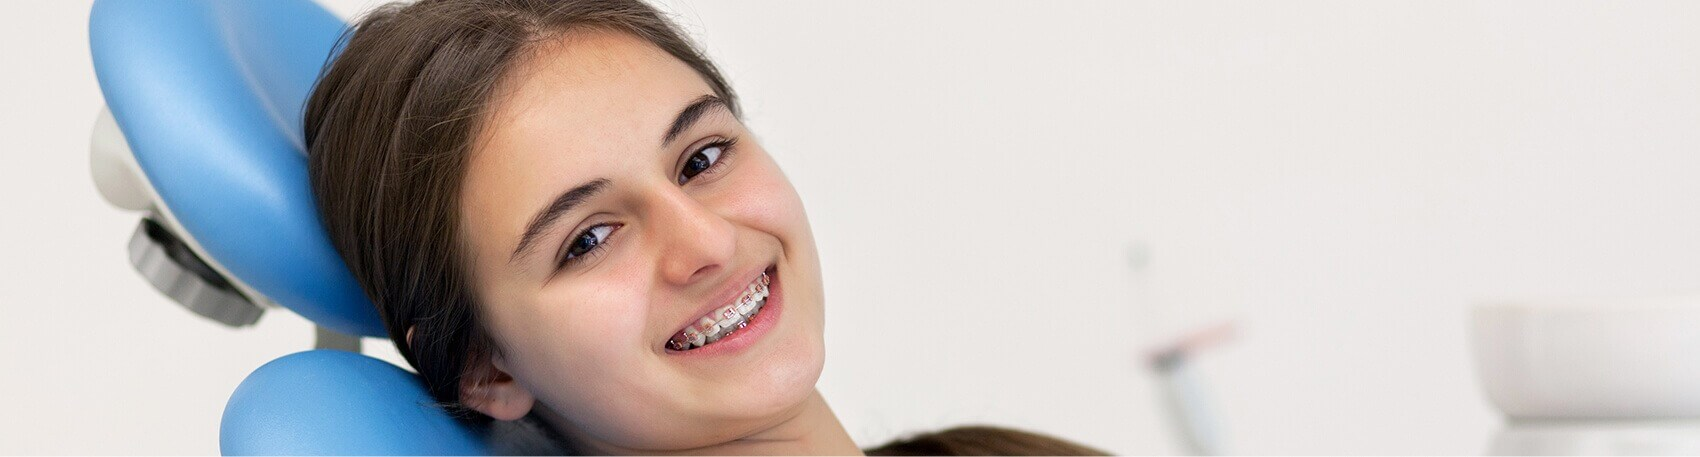 smiling girl with braces sitting in a dental chair